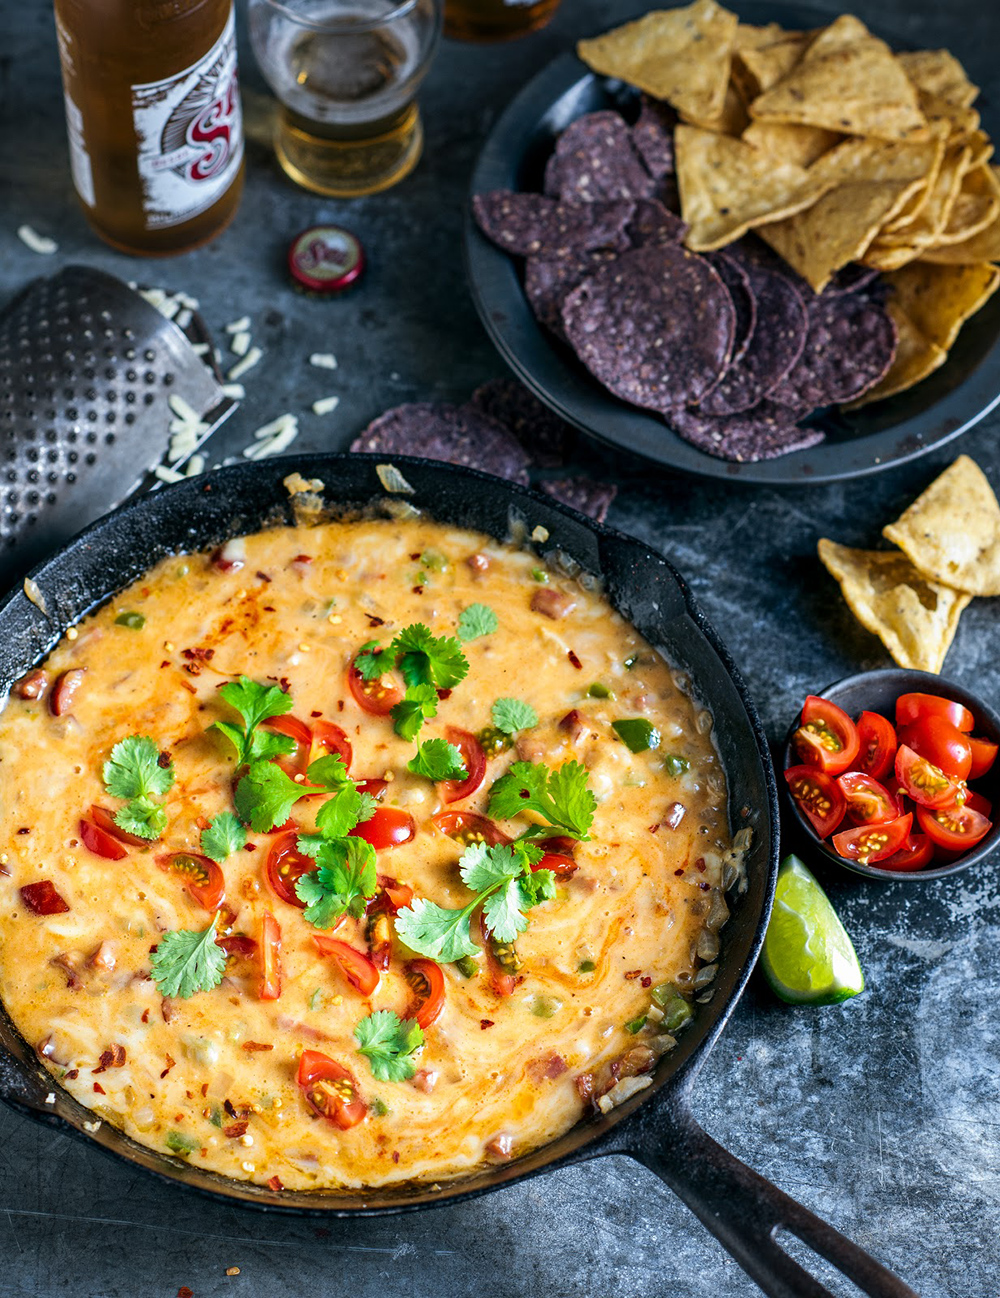 Queso Fundido, Beer, Chorizo, Chilli & Cheese Dip | From The Kitchen - 10 Super Bowl Recipes to Stave Off Monday's Hangover